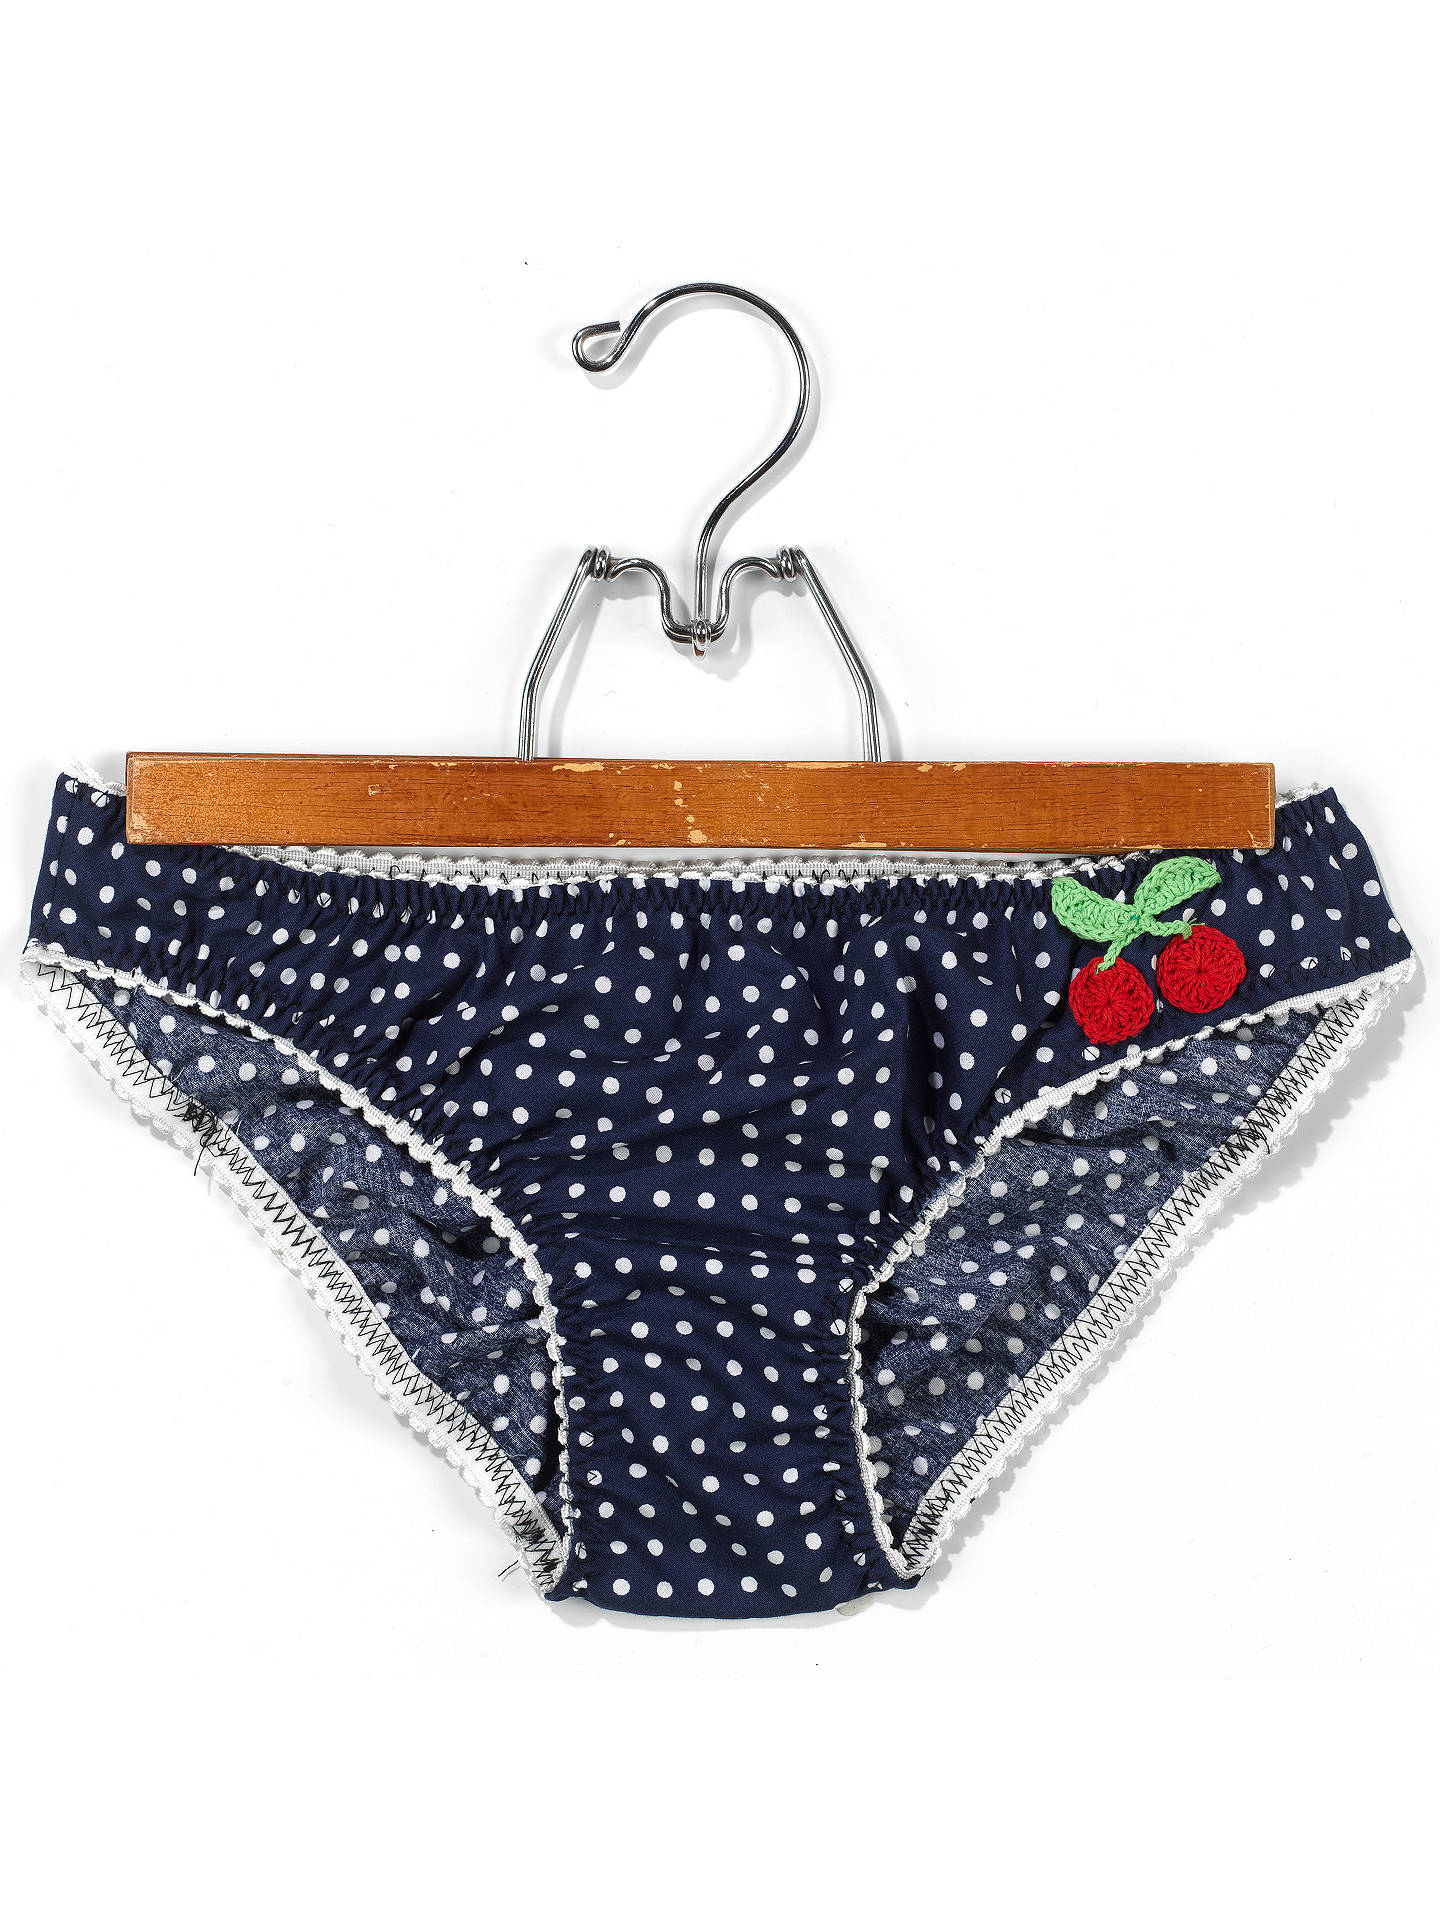 BuyThe Makery Polka Dot Knickers Sewing Craft Kit Online at johnlewis.com